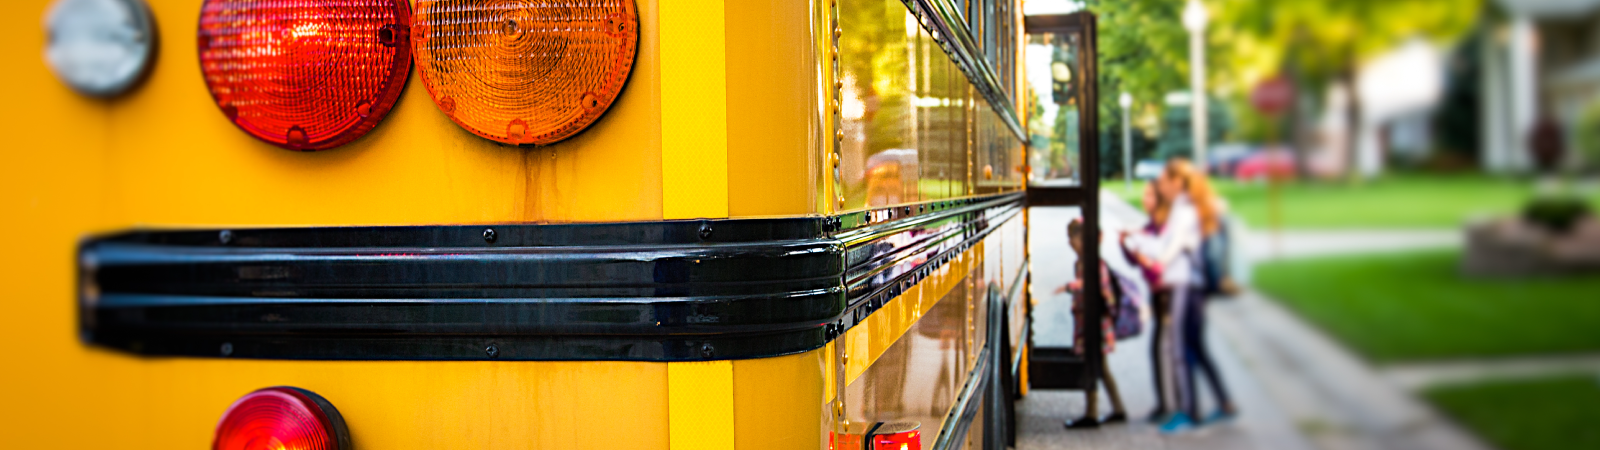 School Bus - Header Image